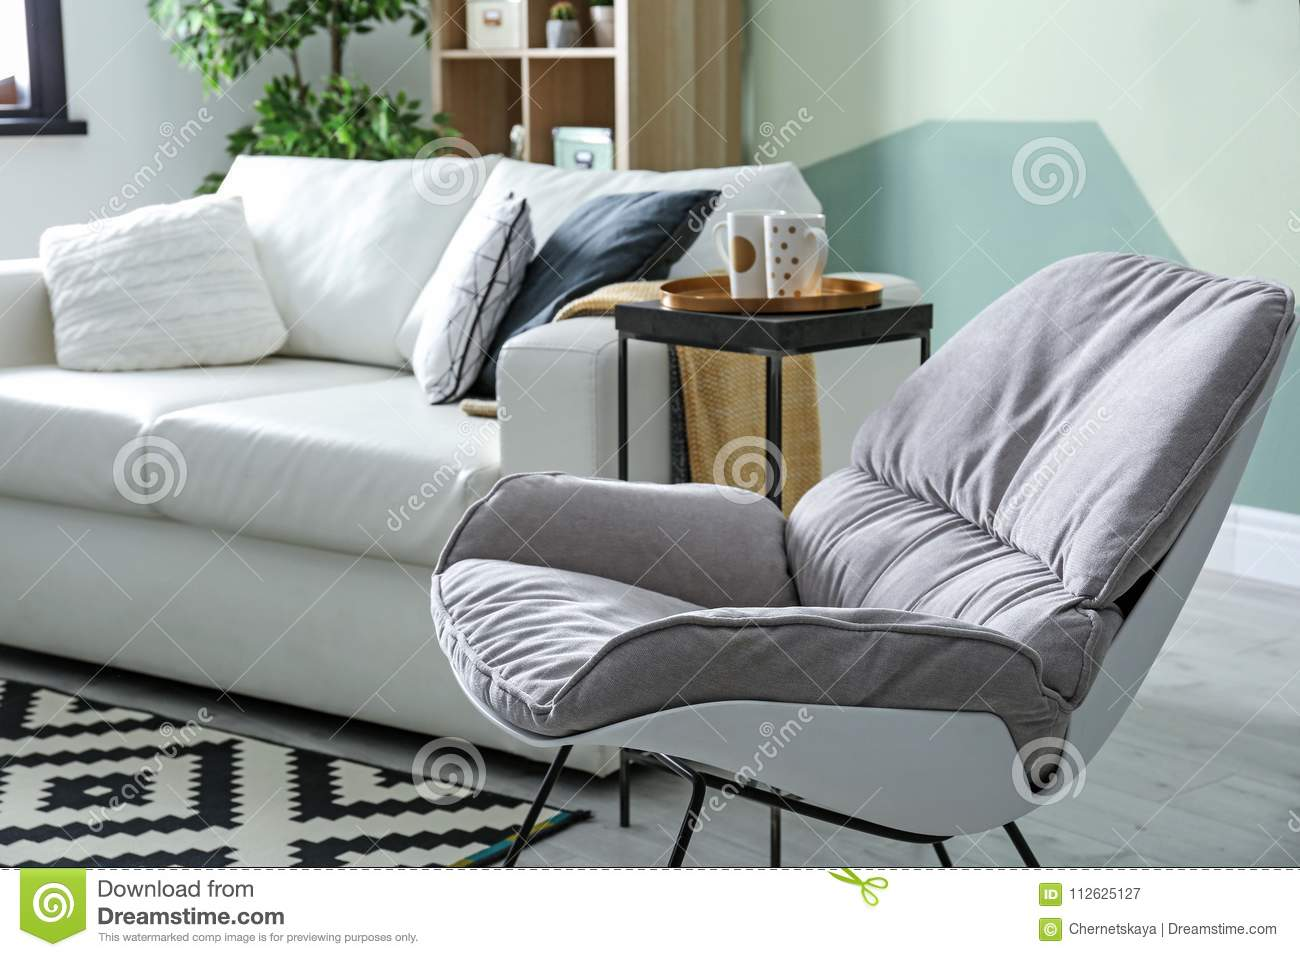 Stylish Living Room Interior With Rocking Chair Stock Image Image